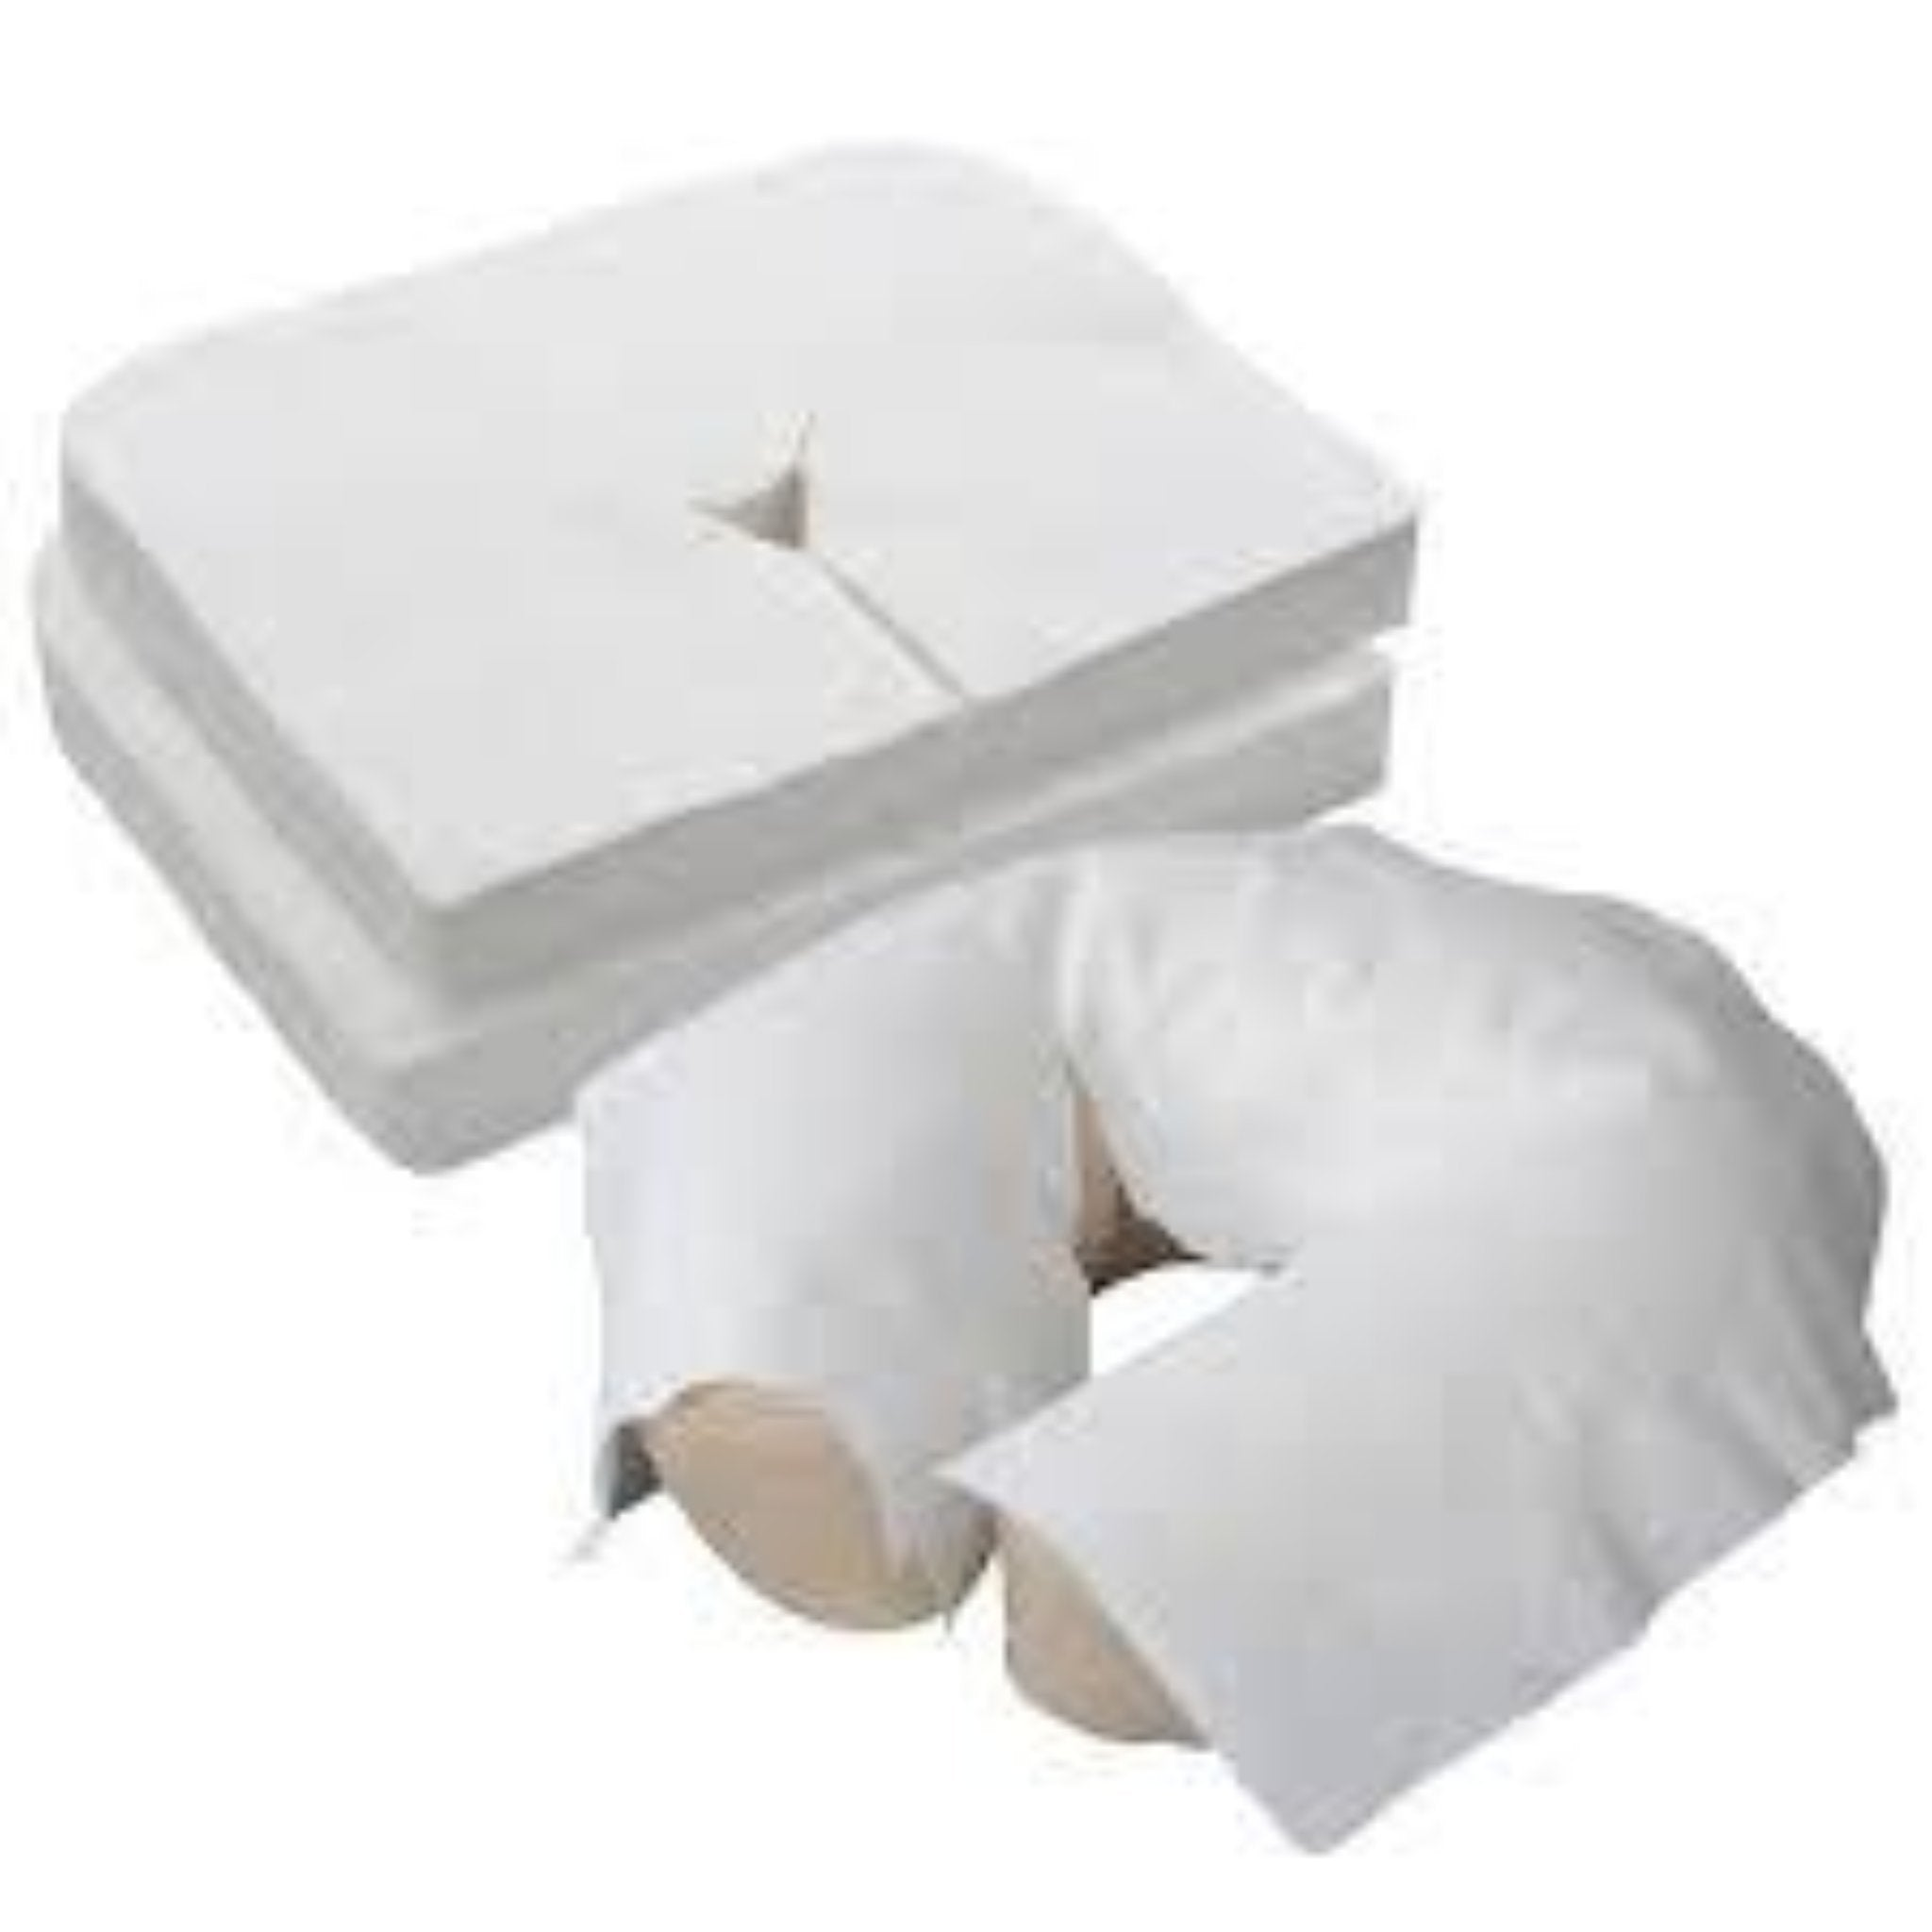 Massage Table Head Rest Cover White Flat Disposable